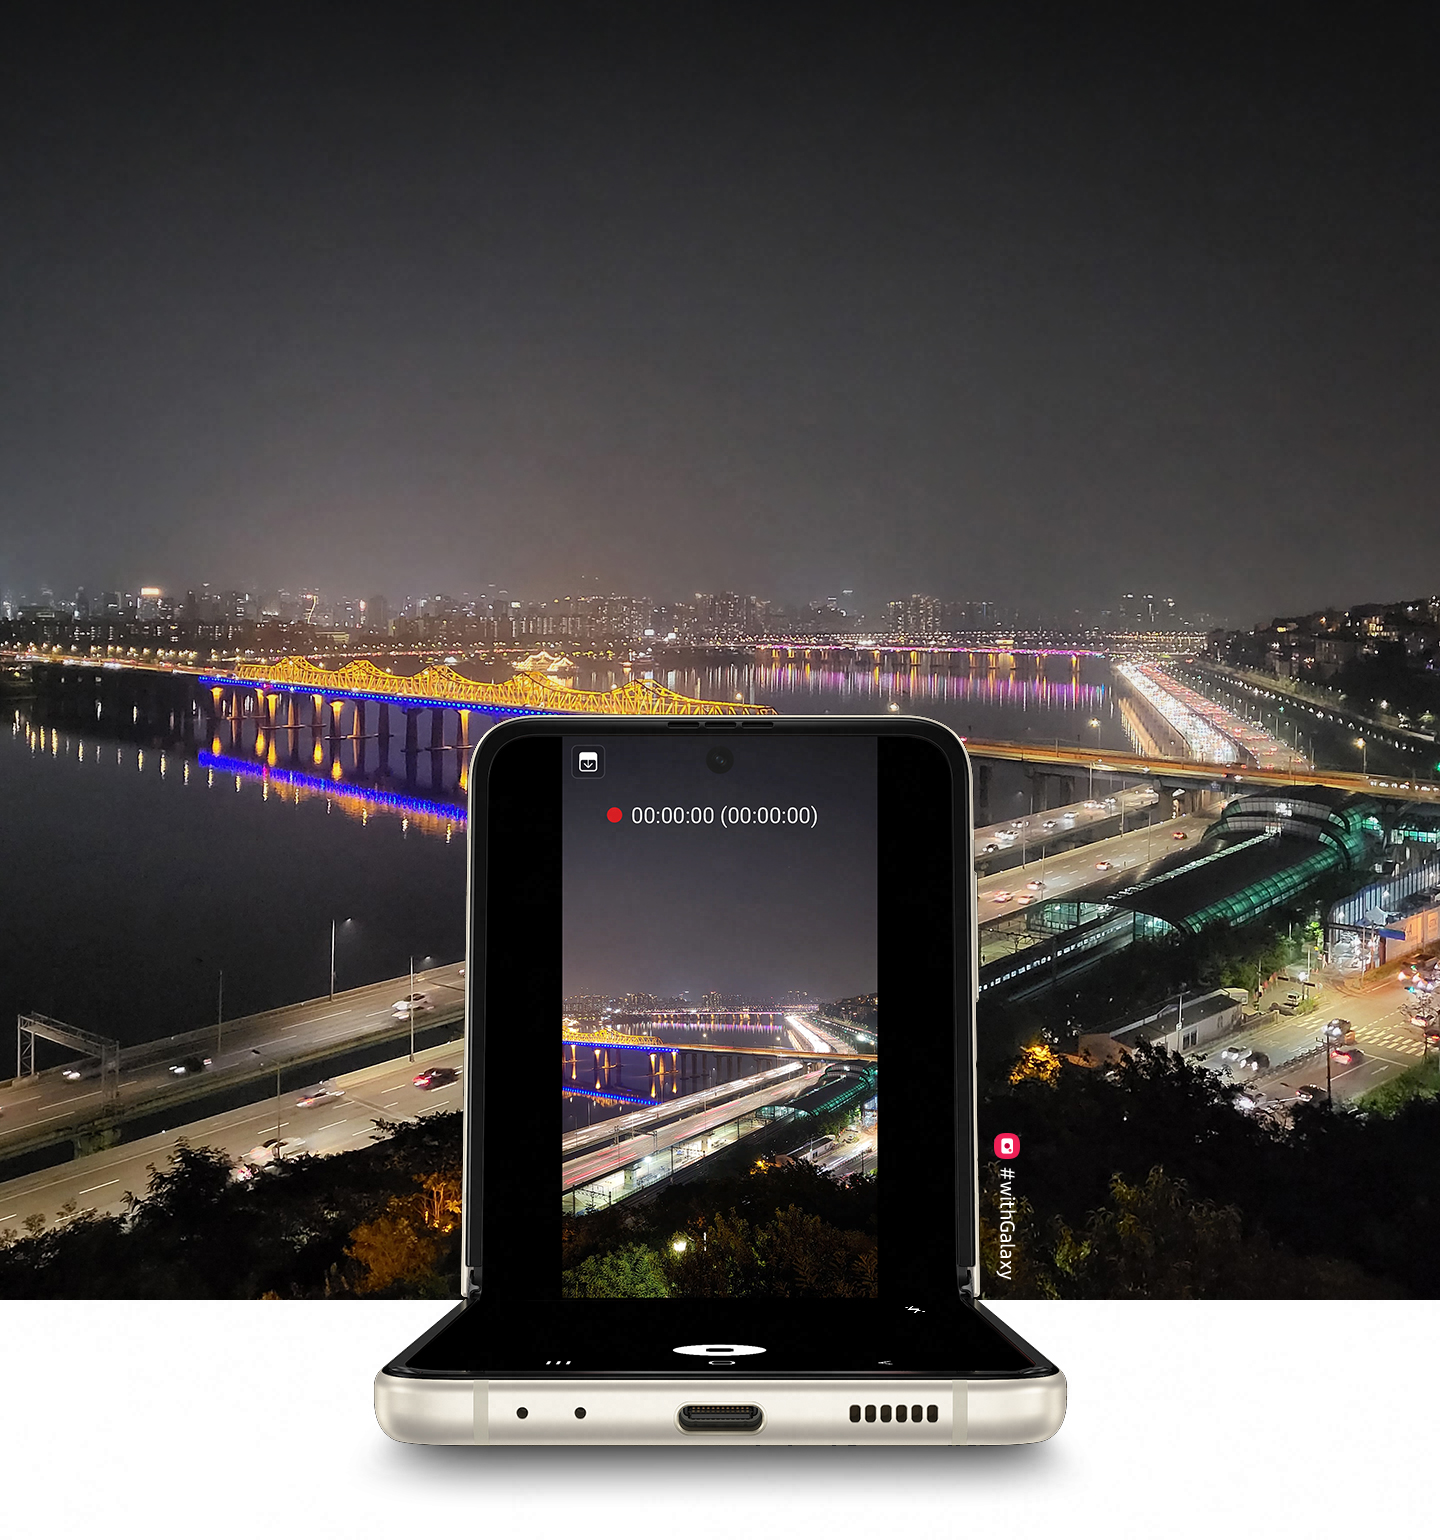 A view of a cityscape at night, as seen from the top of a hill. Galaxy Z Flip3 5G in Flex mode with the Camera app on the Main Screen and the same cityscape in the viewfinder, being recorded with Night Hyperlapse.